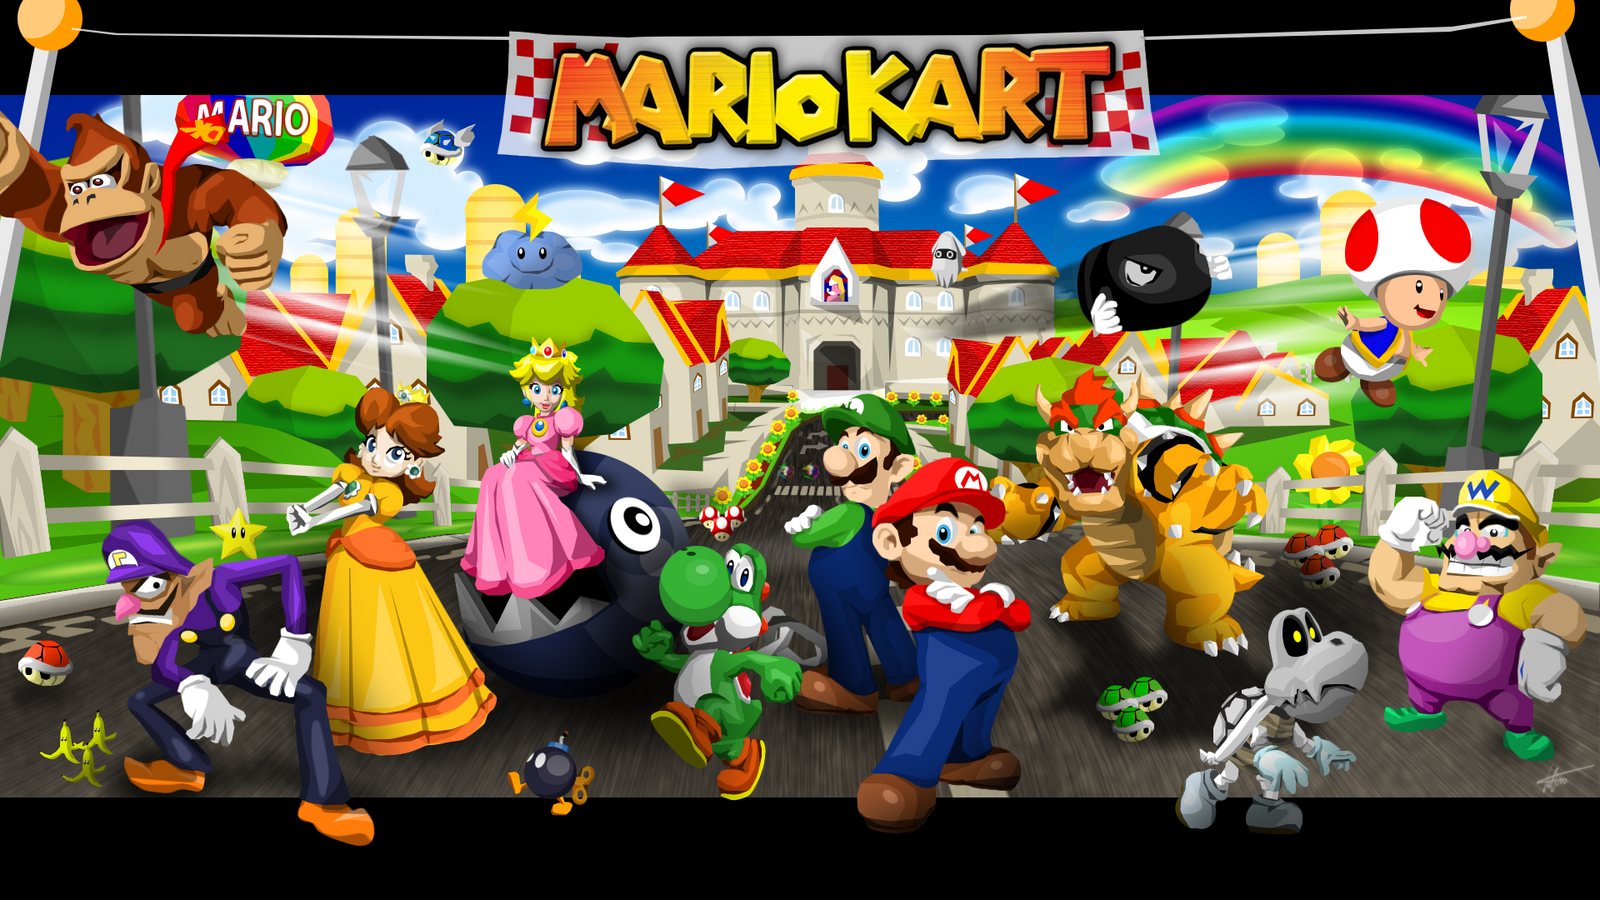 mario kart wallpaper by timdw on deviantart